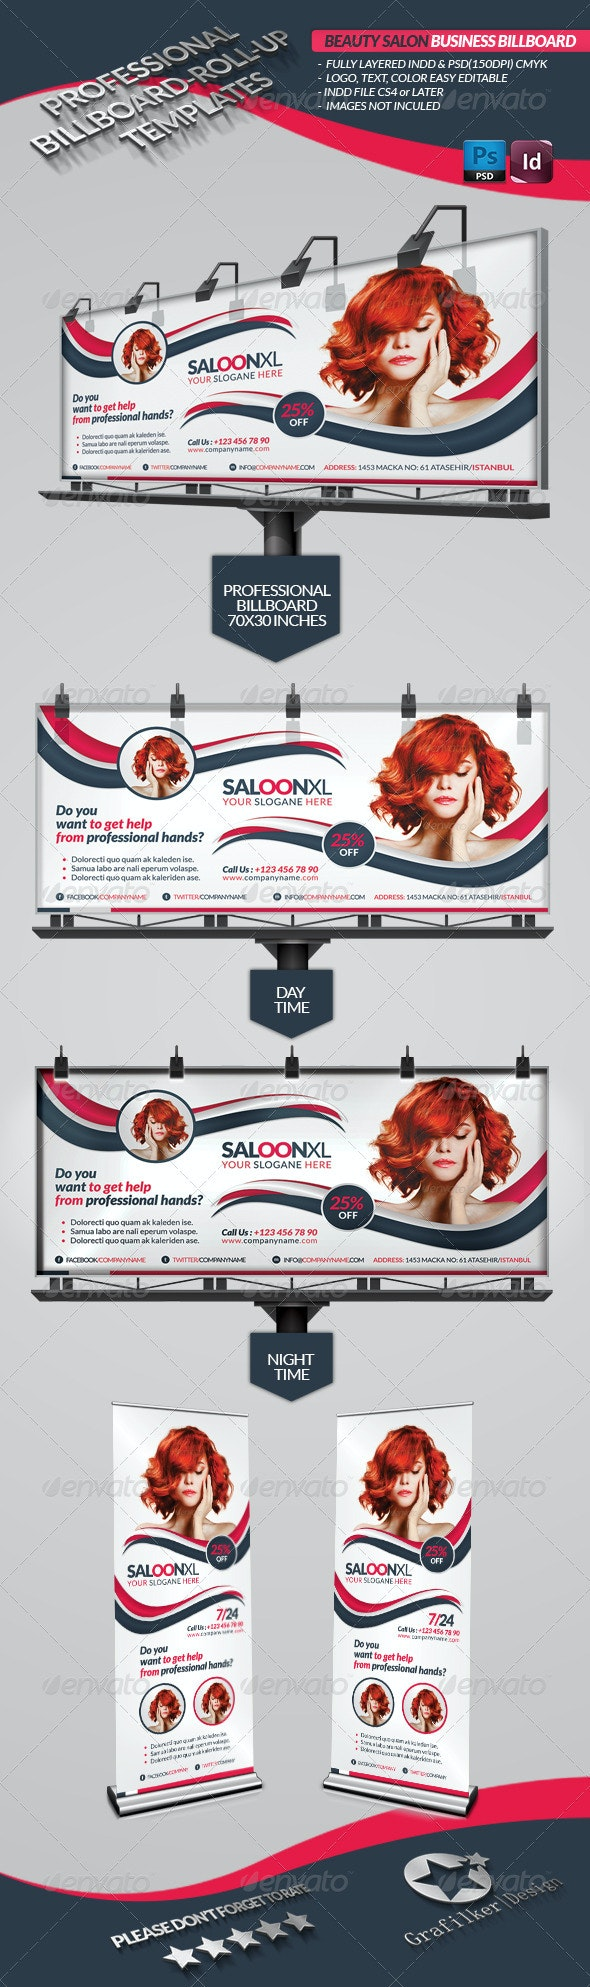 Beauty Salon Business Billboard Roll-up - Signage Print Templates